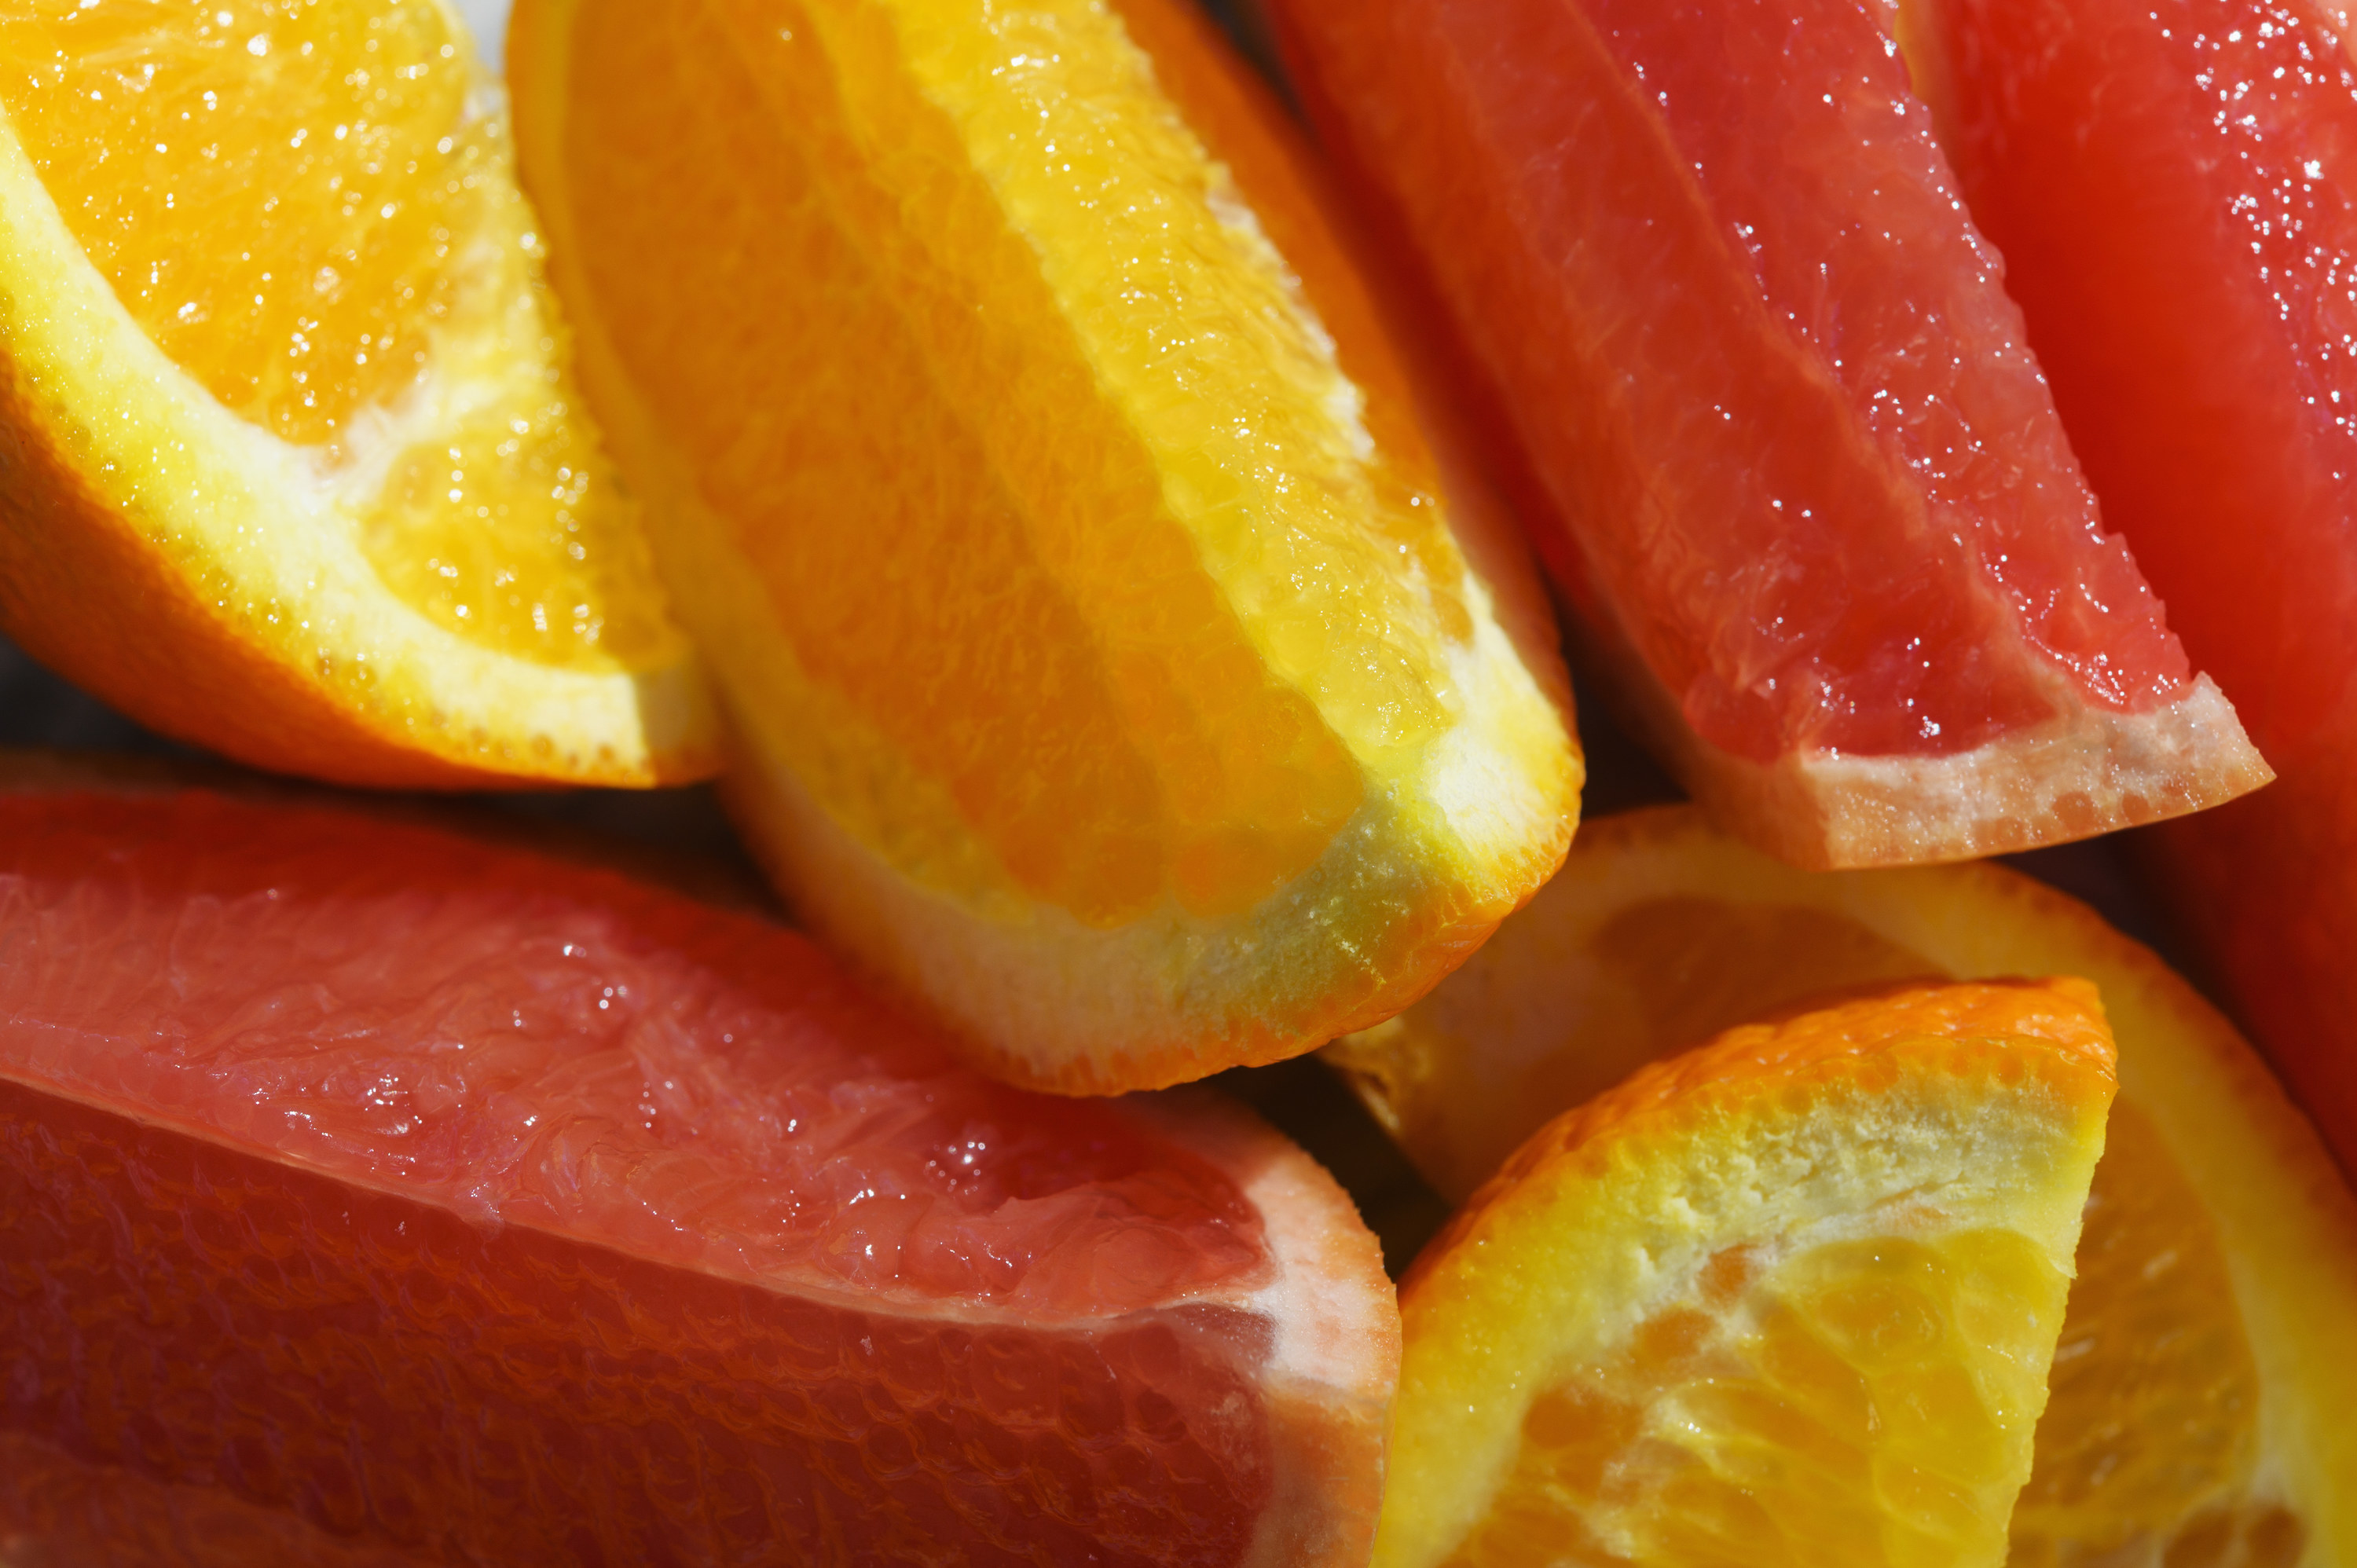 Close-up of yellow and red slices of citrus fruit.